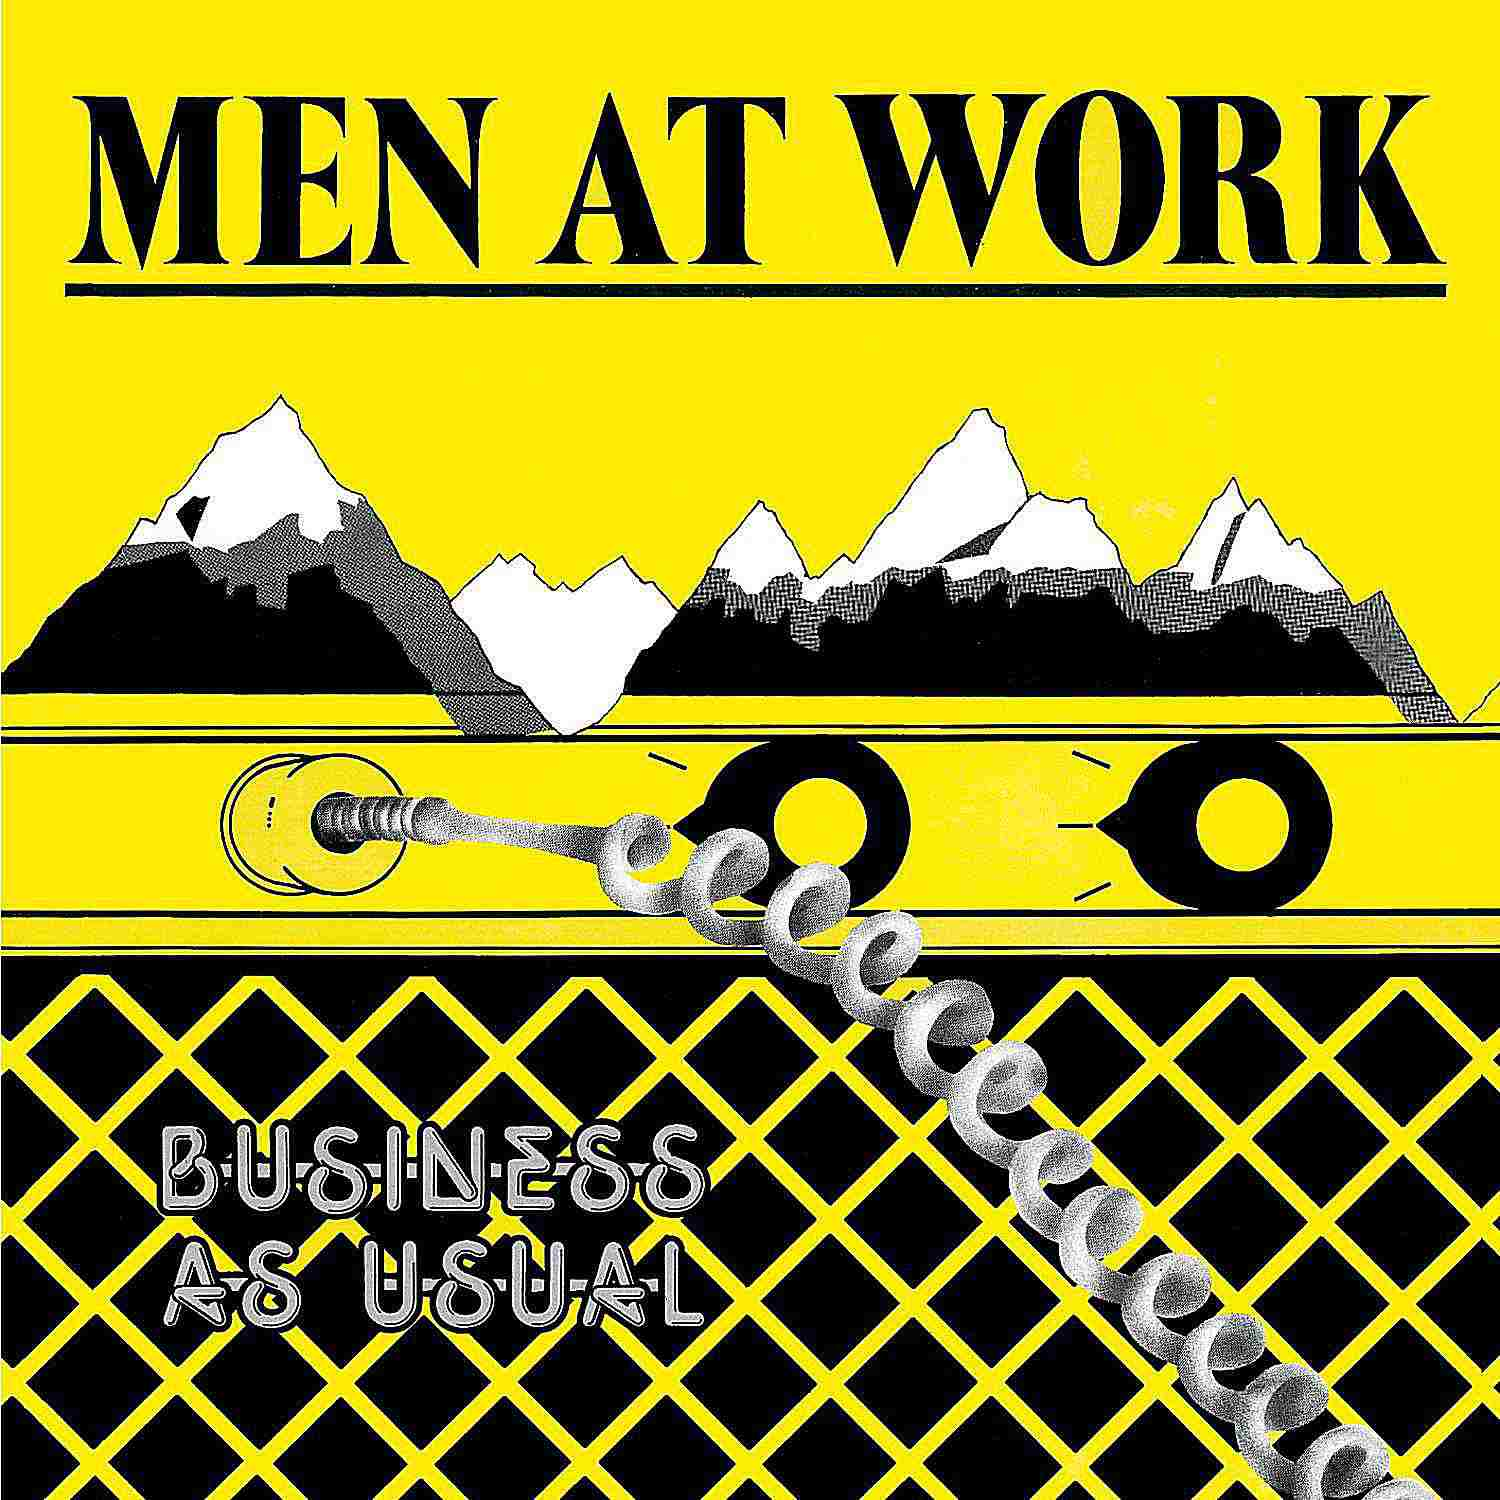 Men at Work originally released its debut classic LP 'Business as Usual' in 1981, but the album didn't become a global hit until 1983.